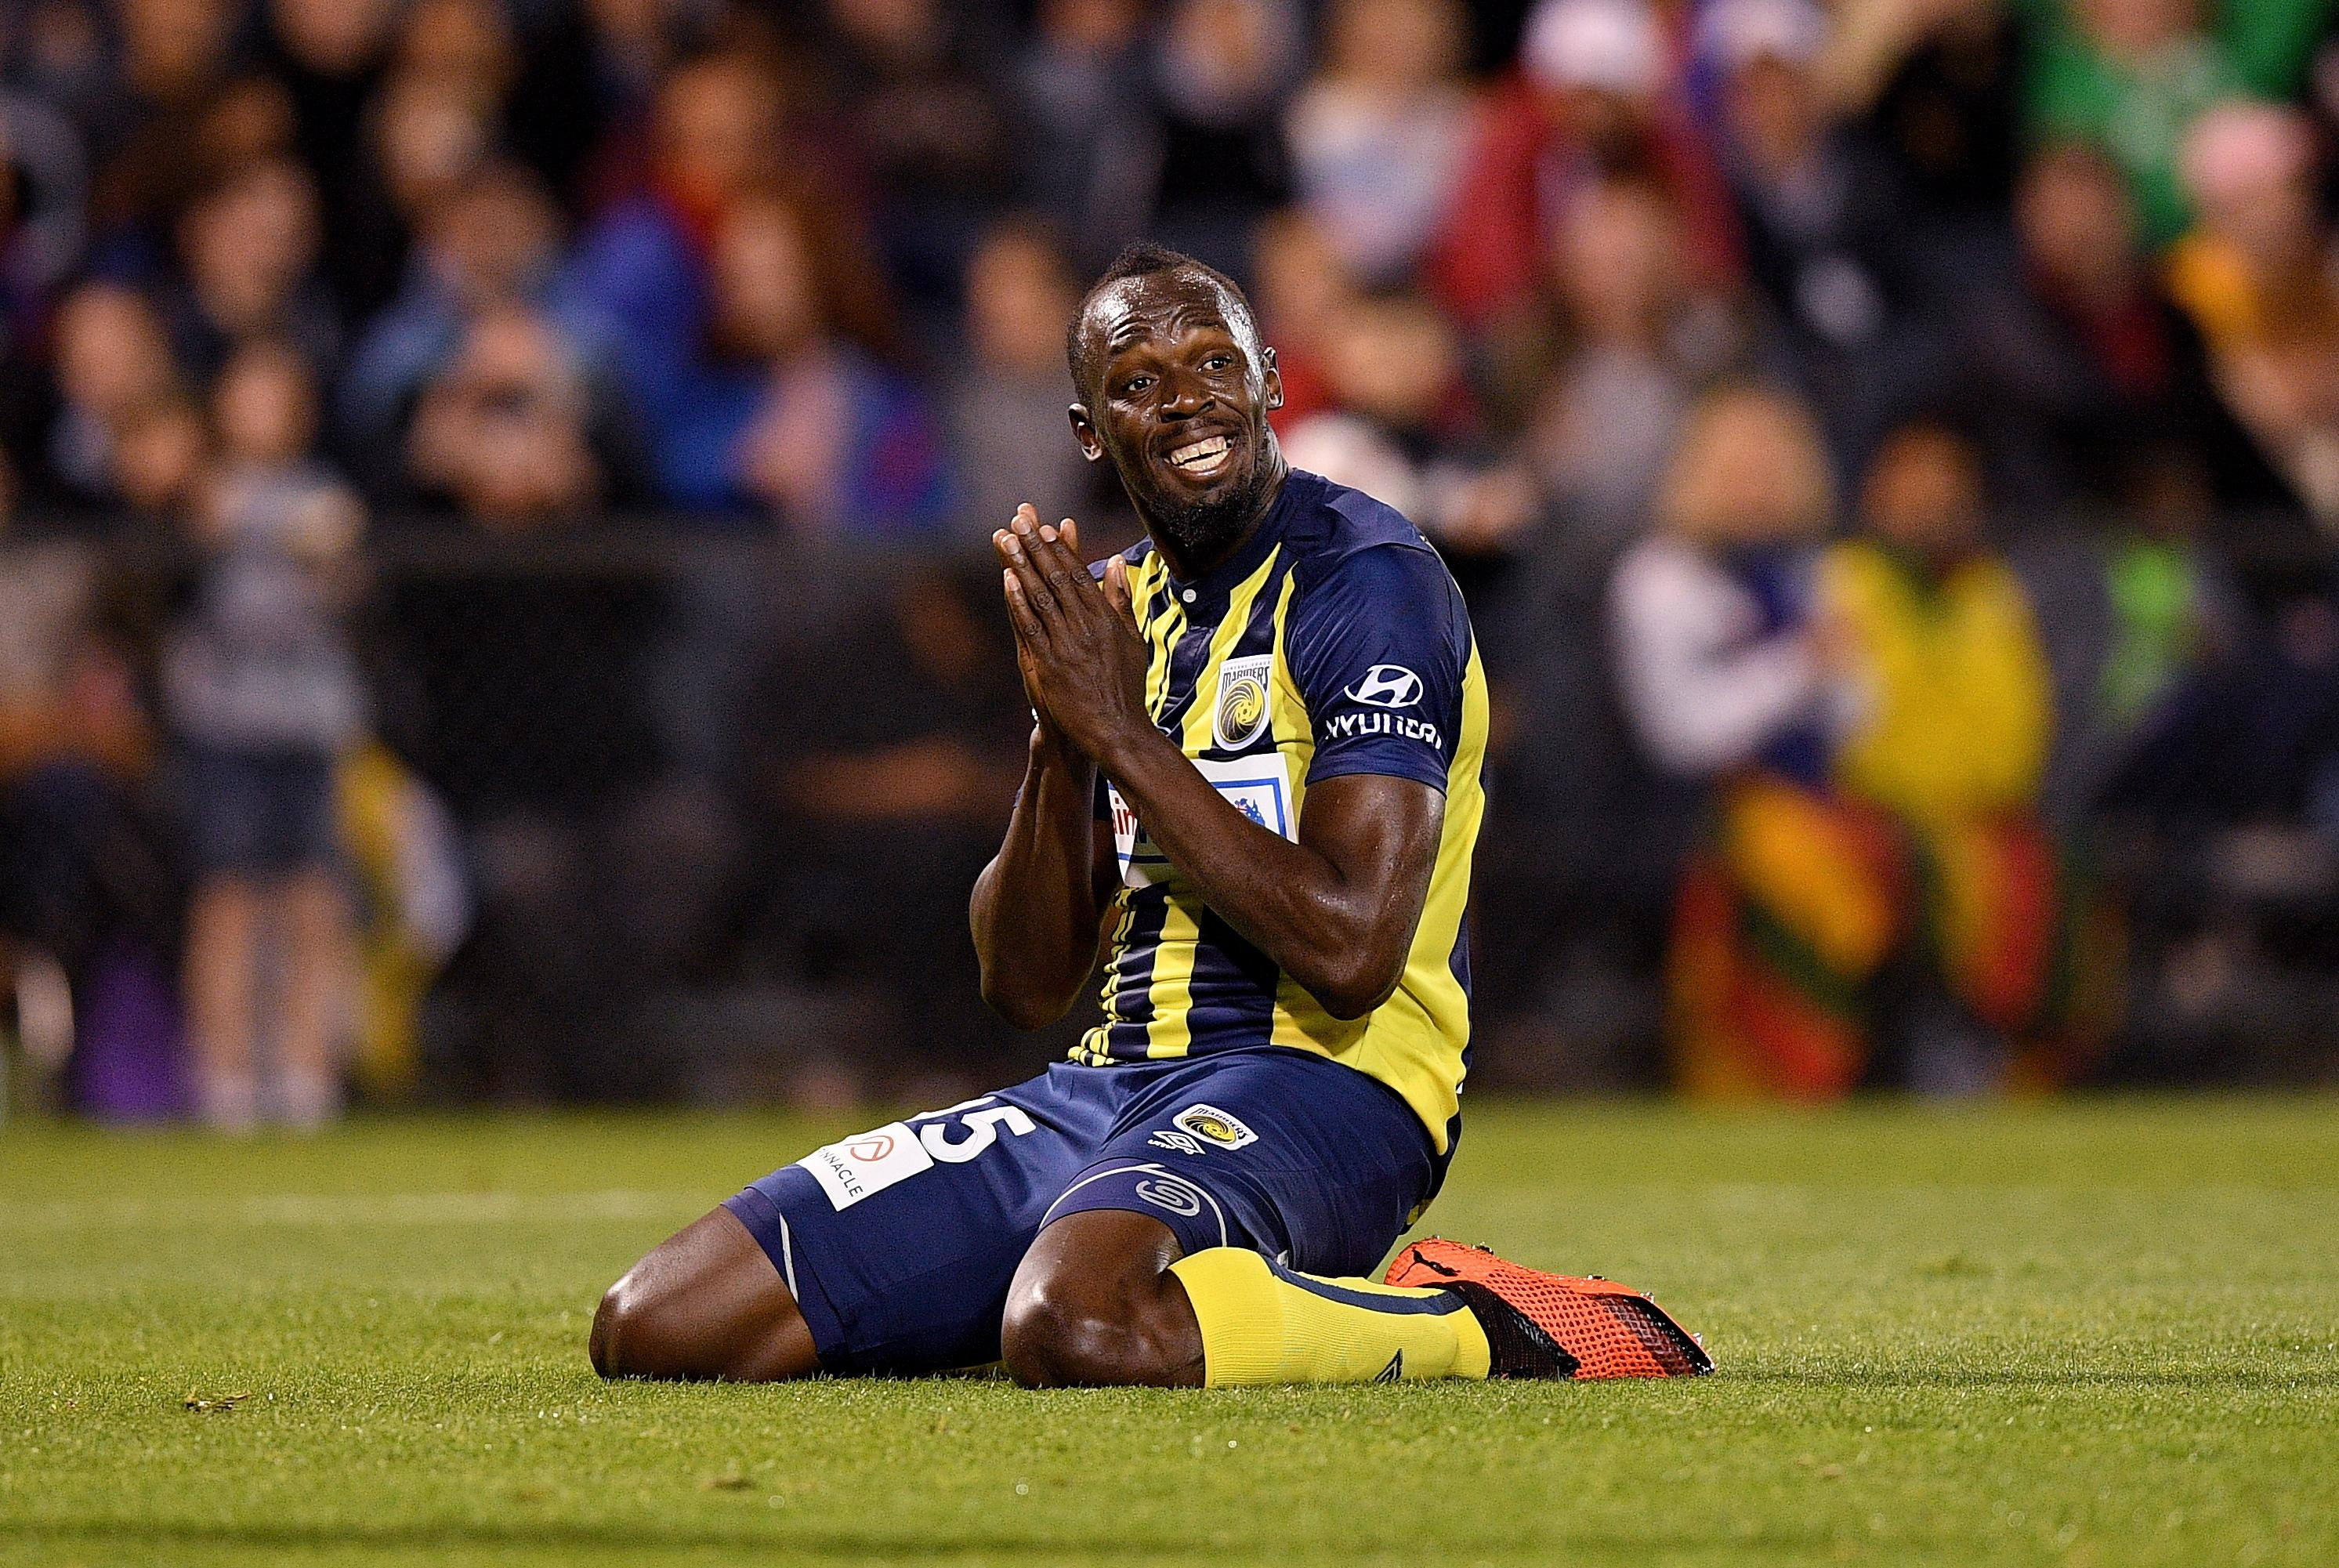 Usain Bolt is trying to become a pro footballer since hanging up his running spikes